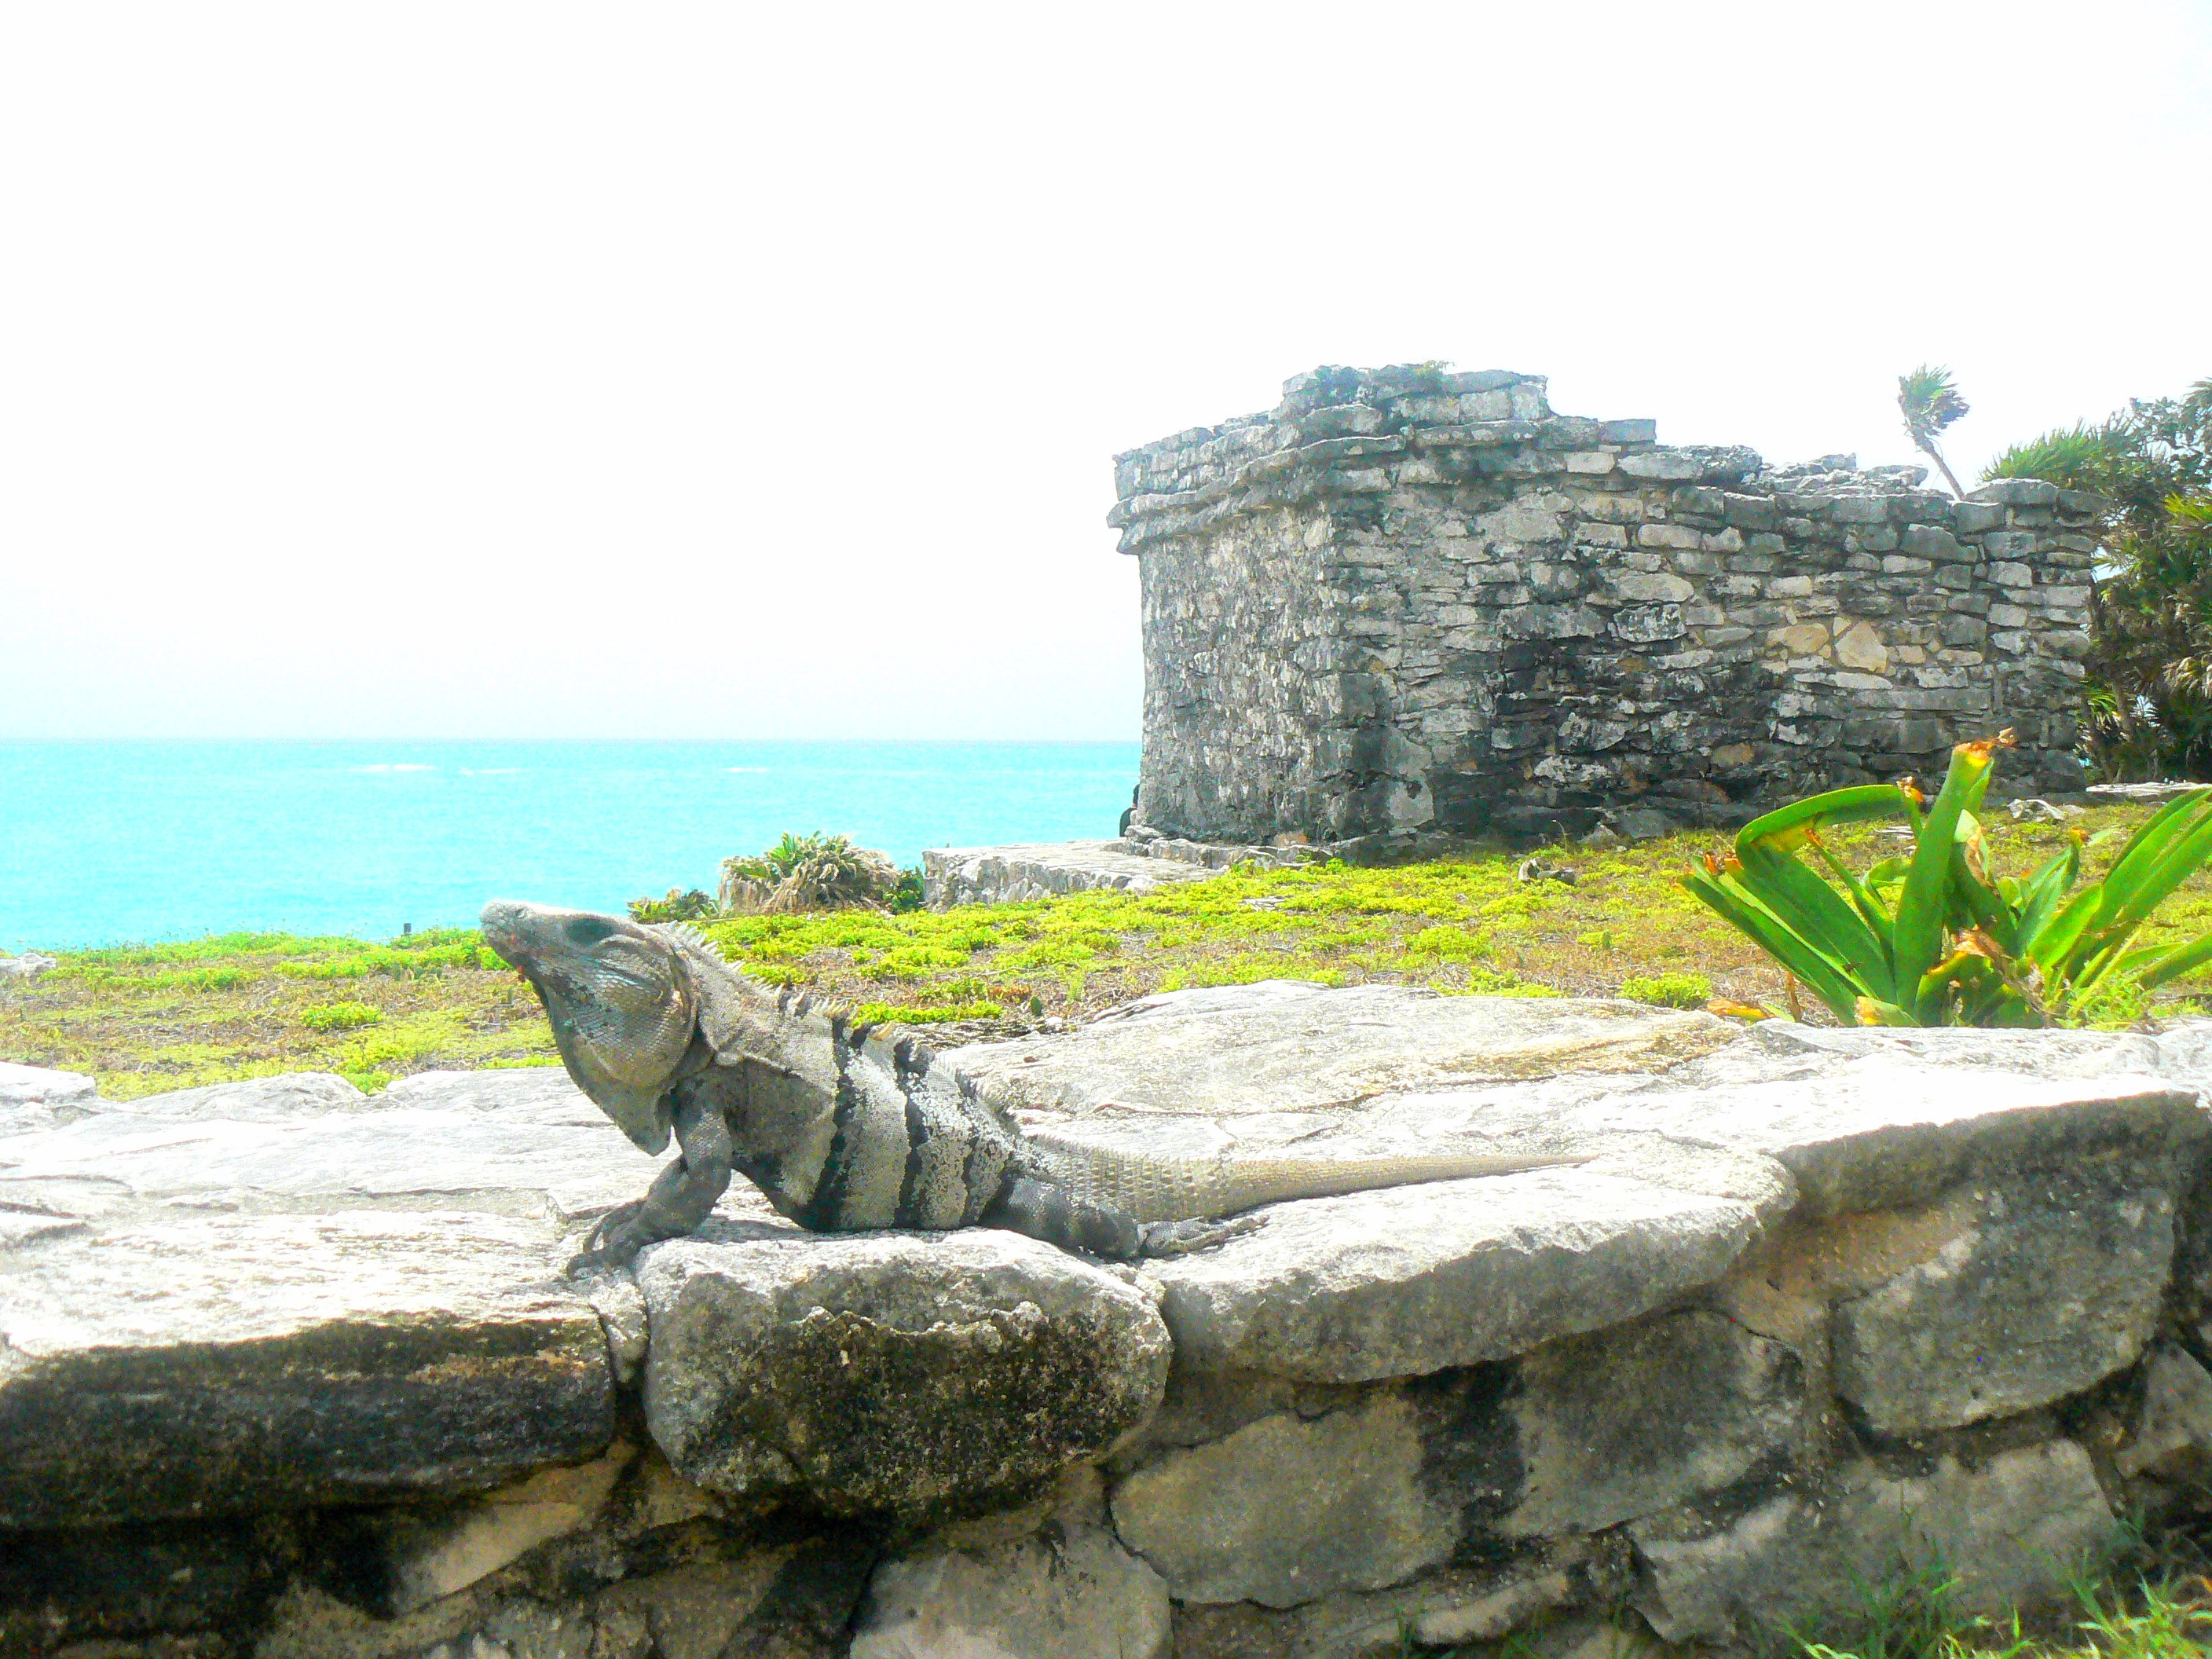 my friend the iguana tulum's ruins